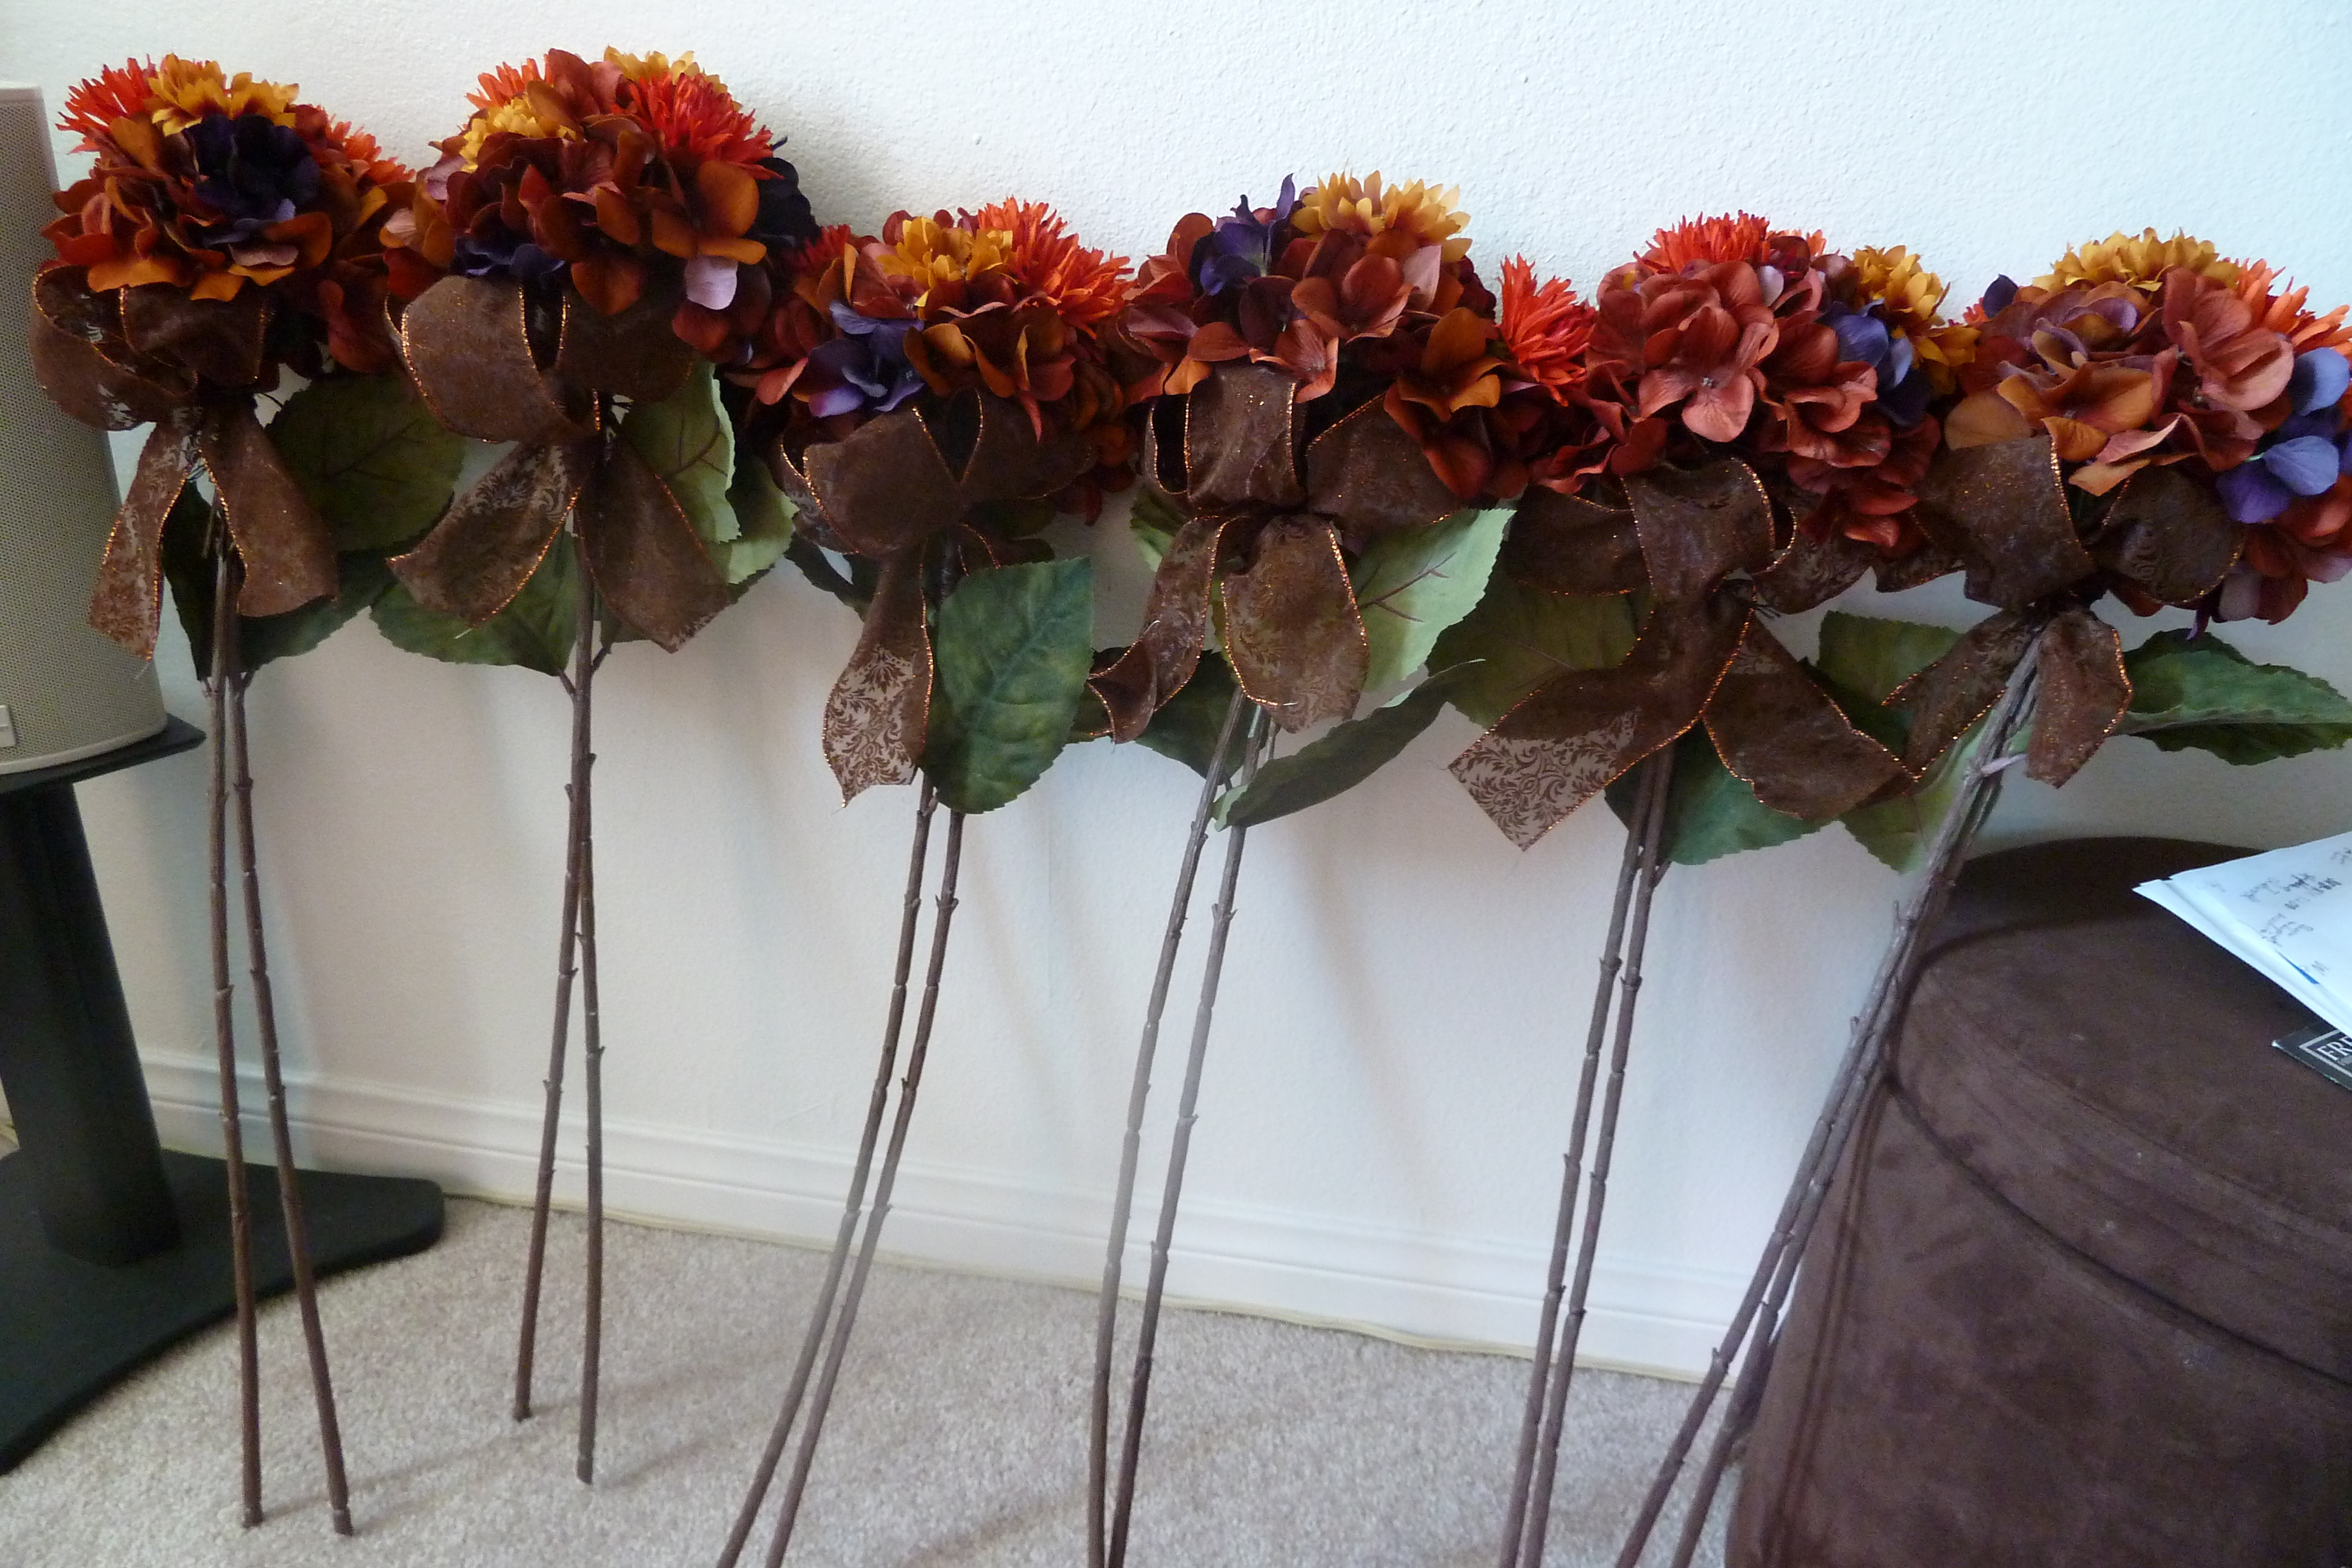 Ceremony, Flowers & Decor, orange, Ceremony Flowers, Fall, Flowers, Fall Wedding Flowers & Decor, Pomander, Fake, Silk